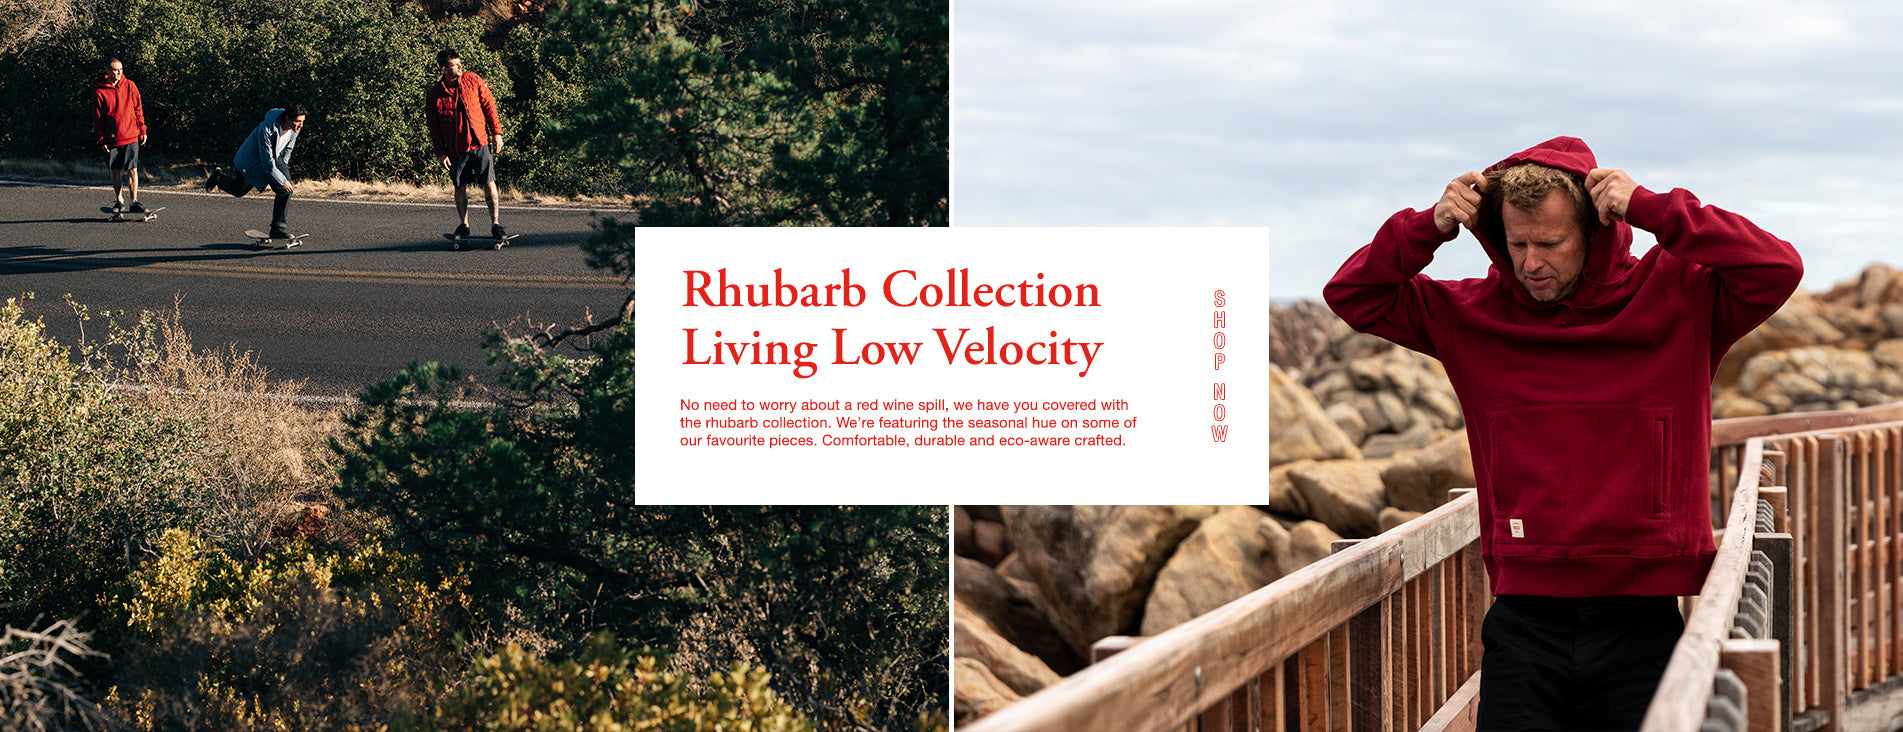 Globe Apparel 2021 Introducing The Rhubarb Collection Living Low Velocity